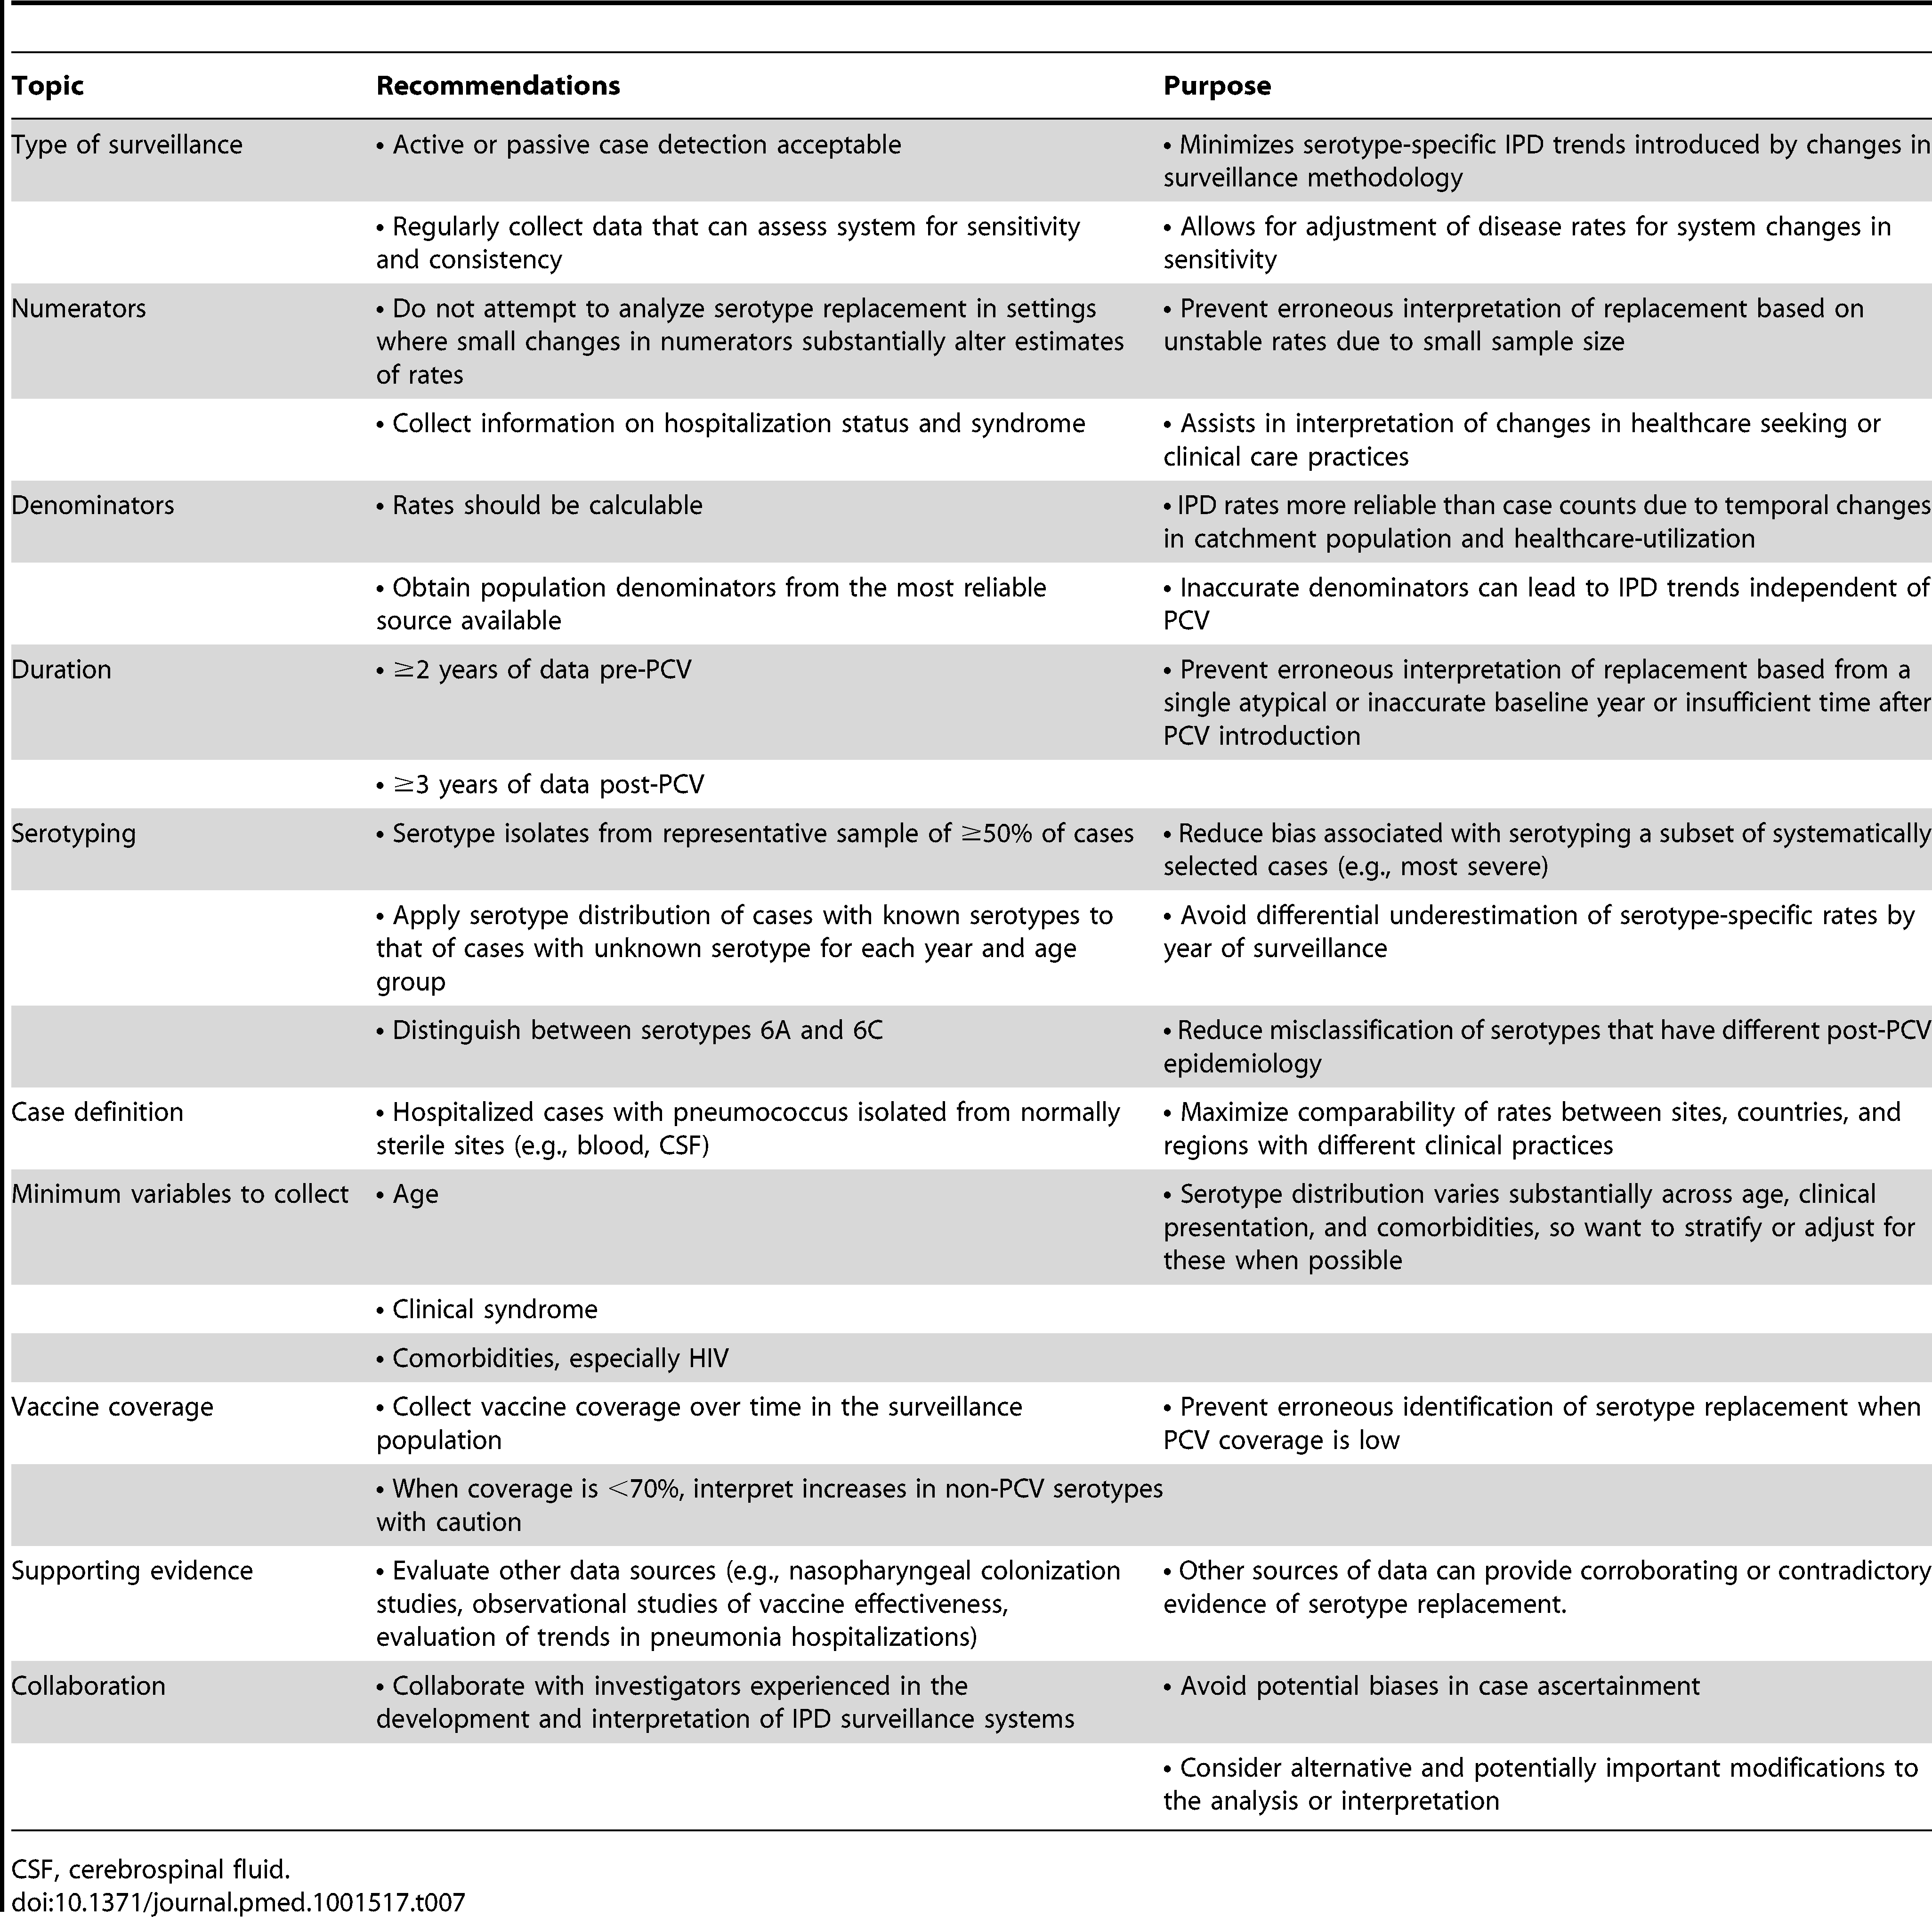 Recommendations for maximizing the interpretability of surveillance data on invasive pneumococcal disease rates in the context of serotype replacement.